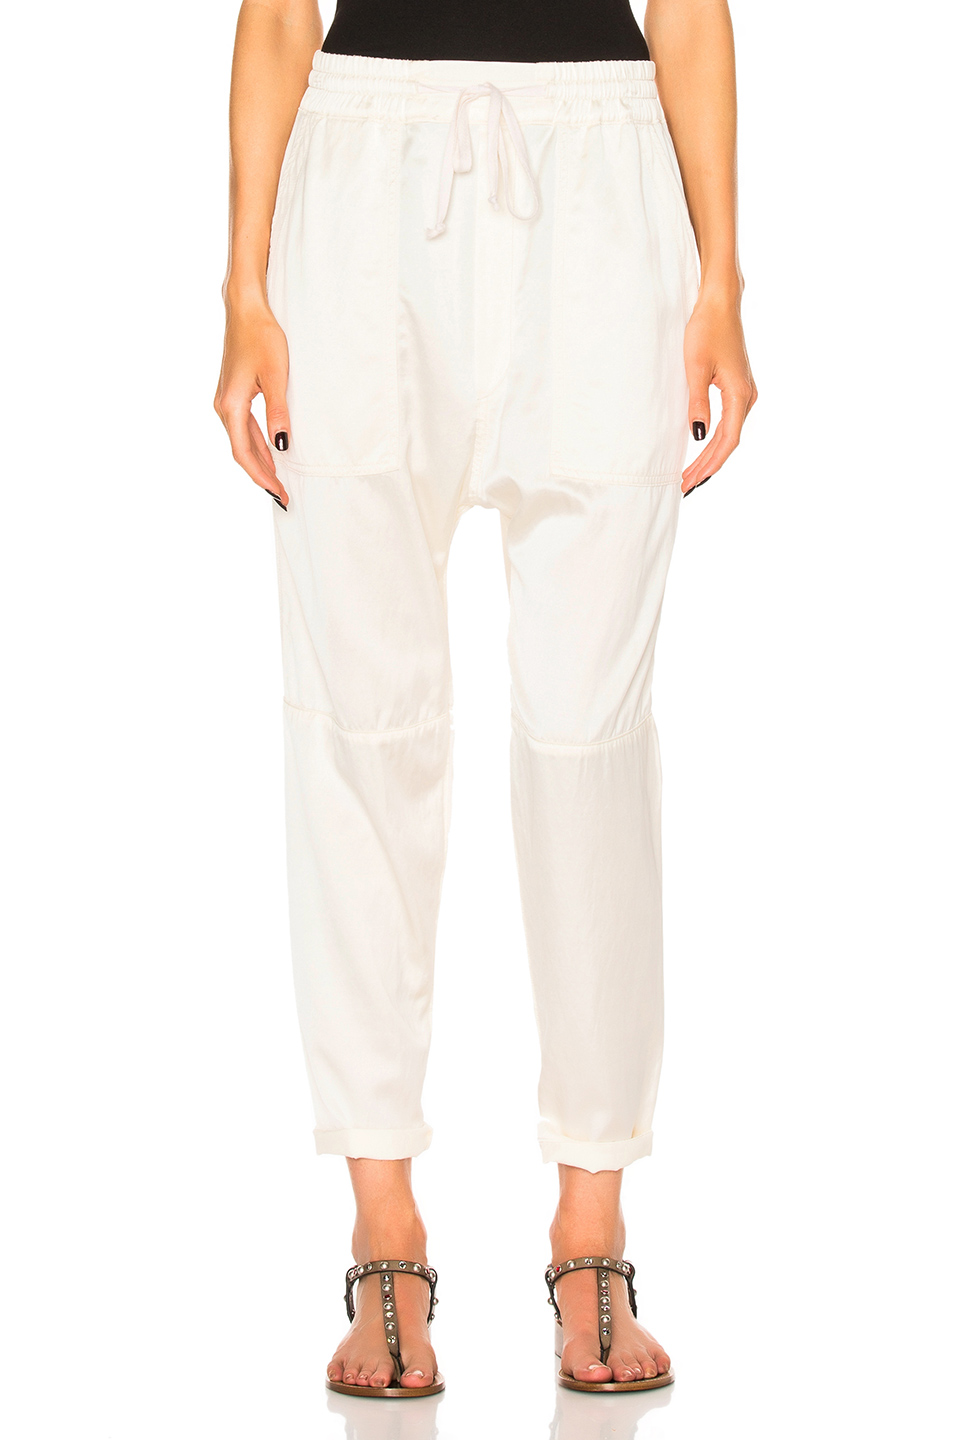 Citizens of Humanity Sadie Pull On Pant in Neutrals,White